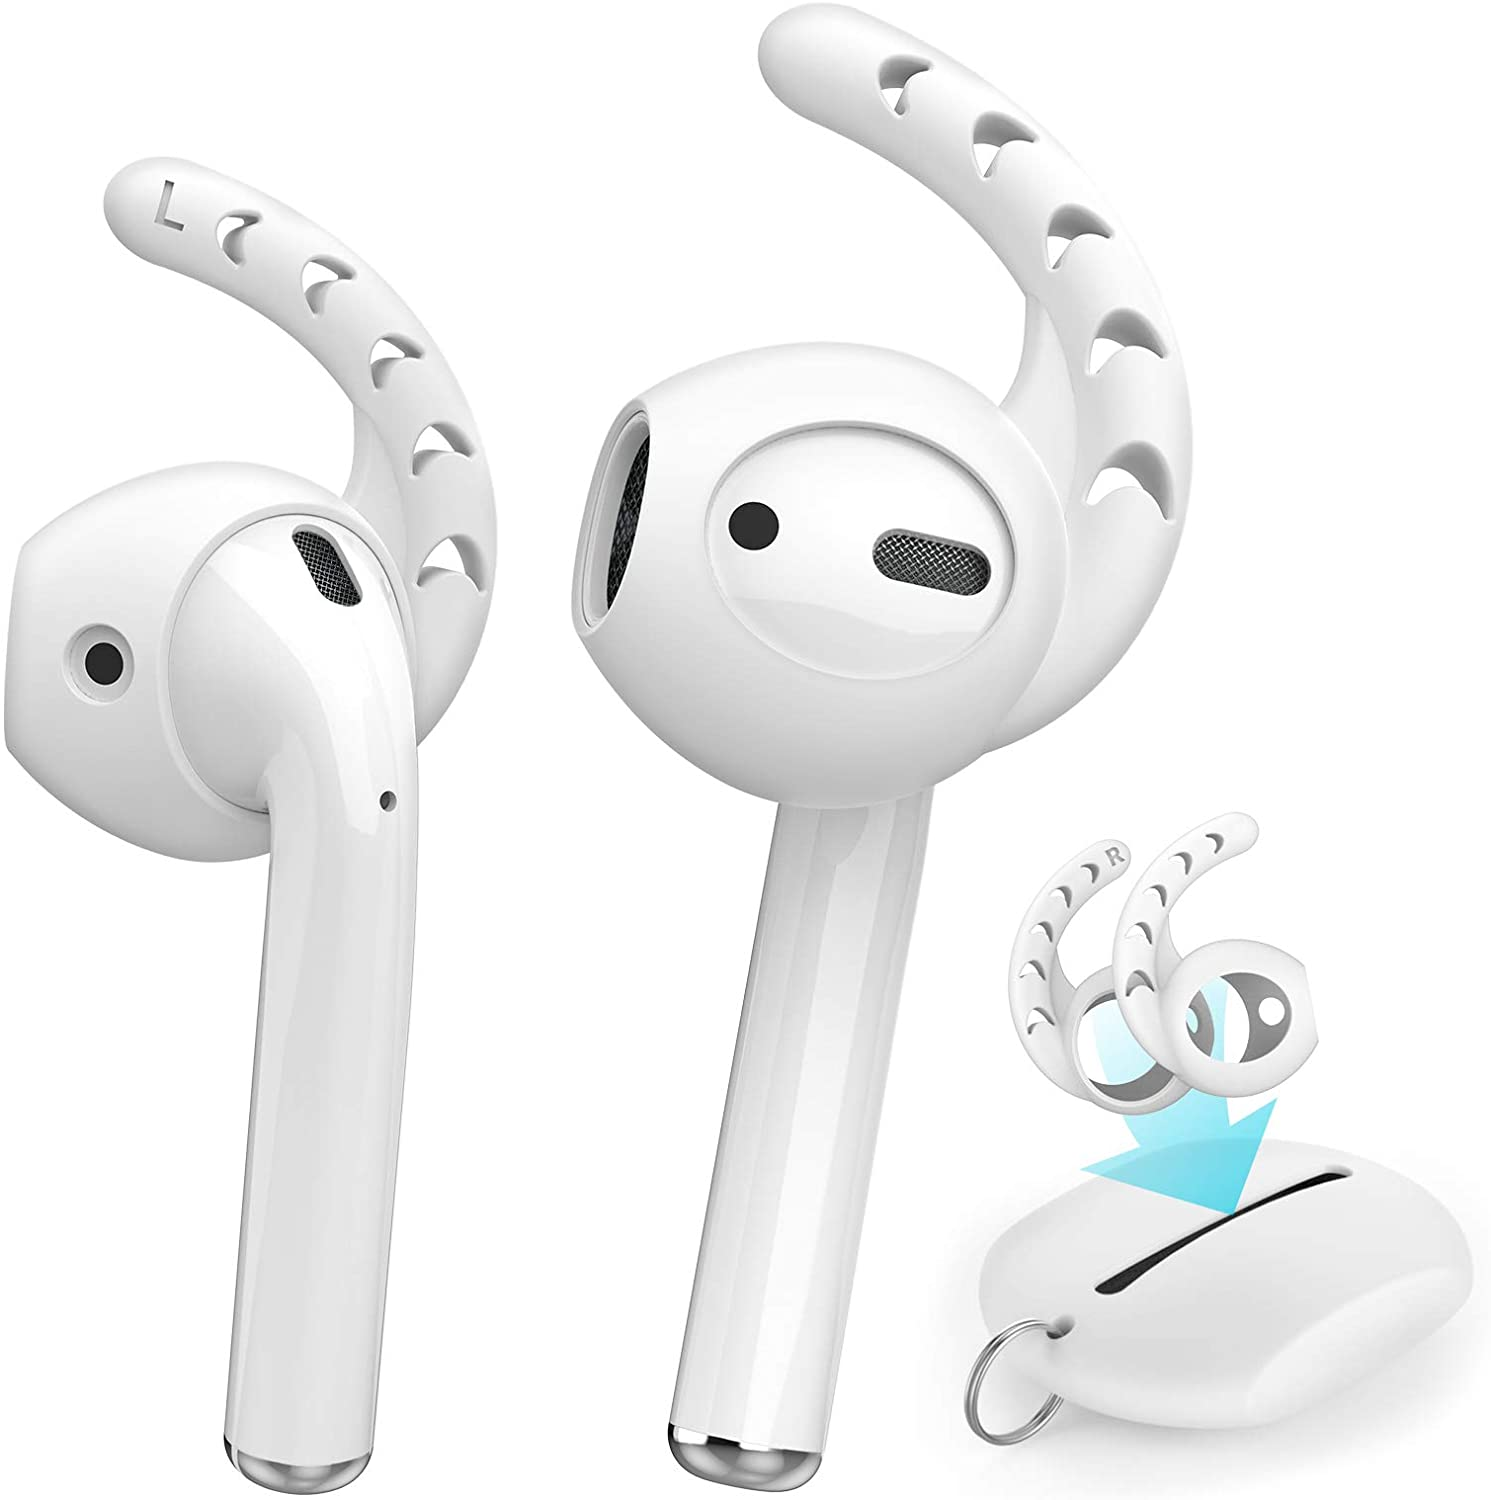 AhaStyle 3 Pairs AirPods Ear Hooks Silicone Accessories [ Added Storage Pouch] Compatible with Apple AirPods 1 and 2 or EarPods Headphones(Milk White)